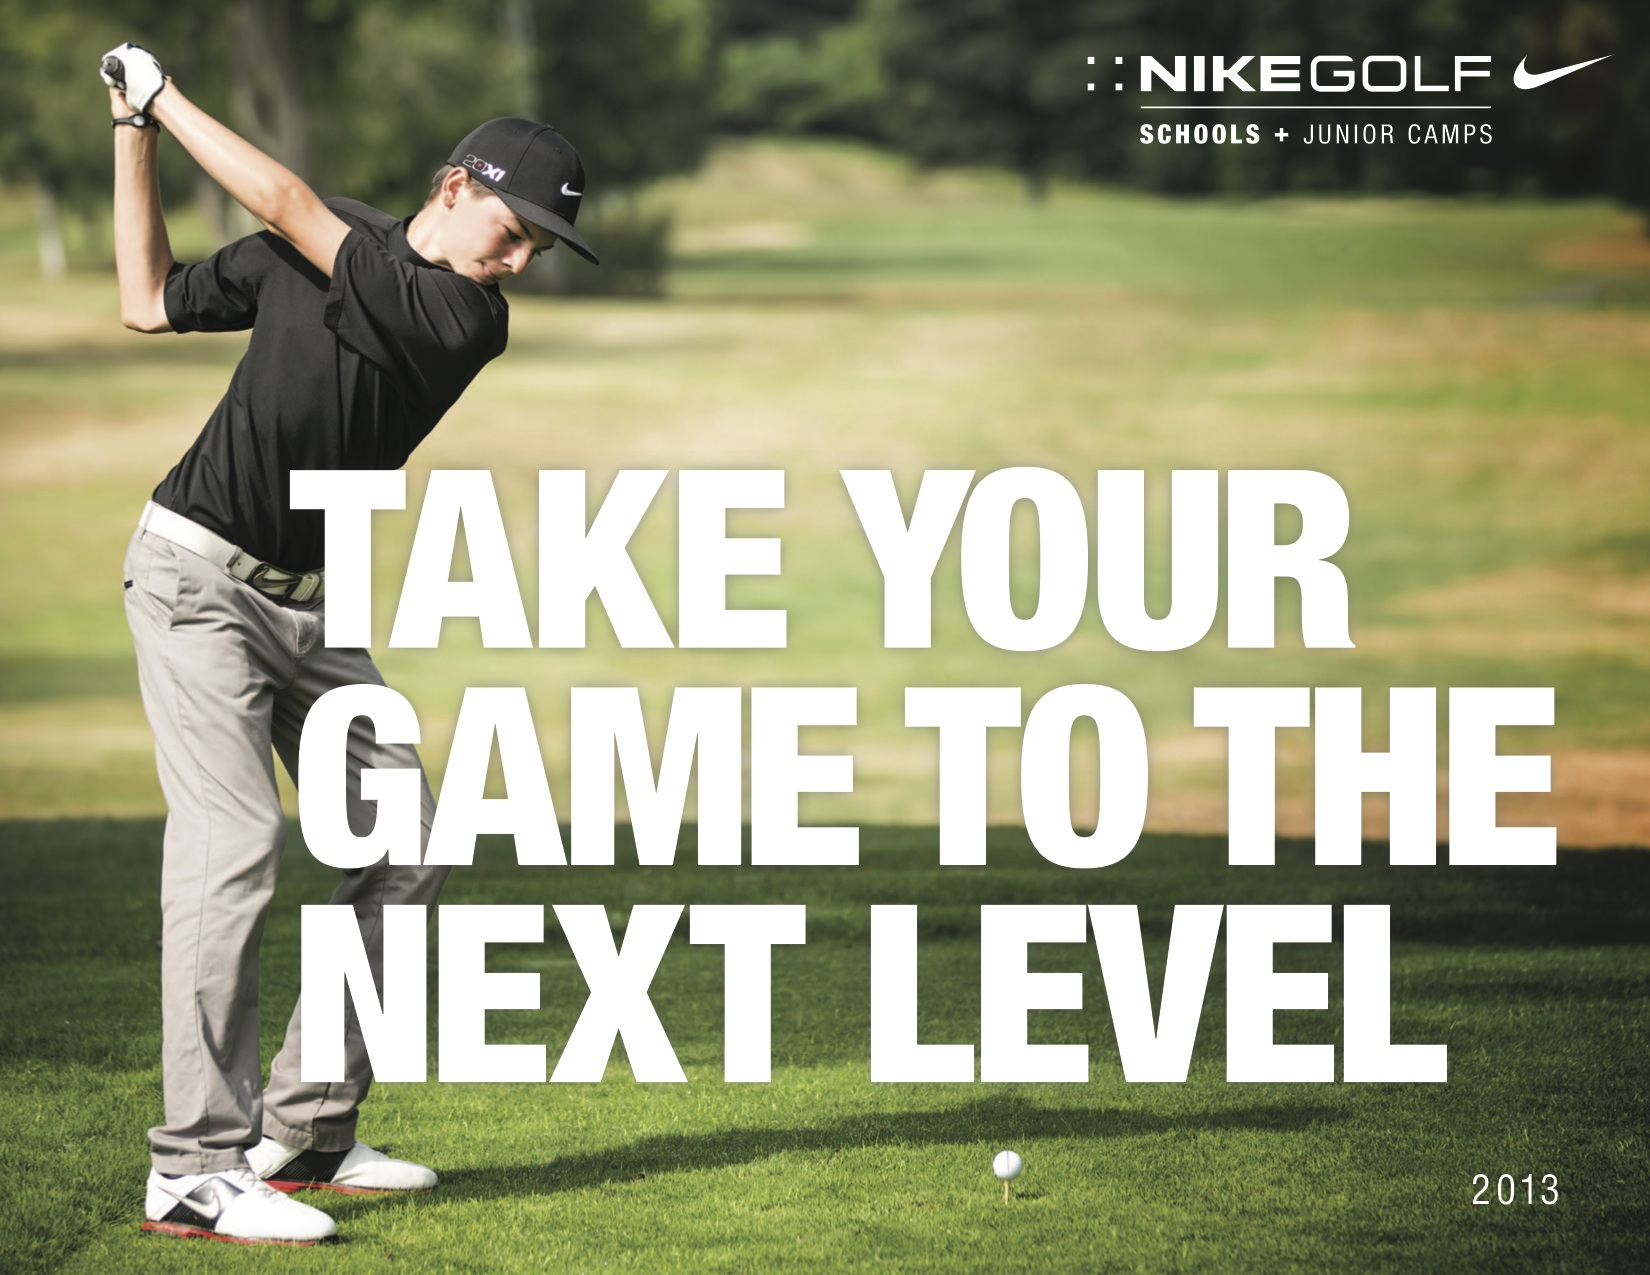 Nike Golf Schools and Junior Camps 2013 Digital Brochure